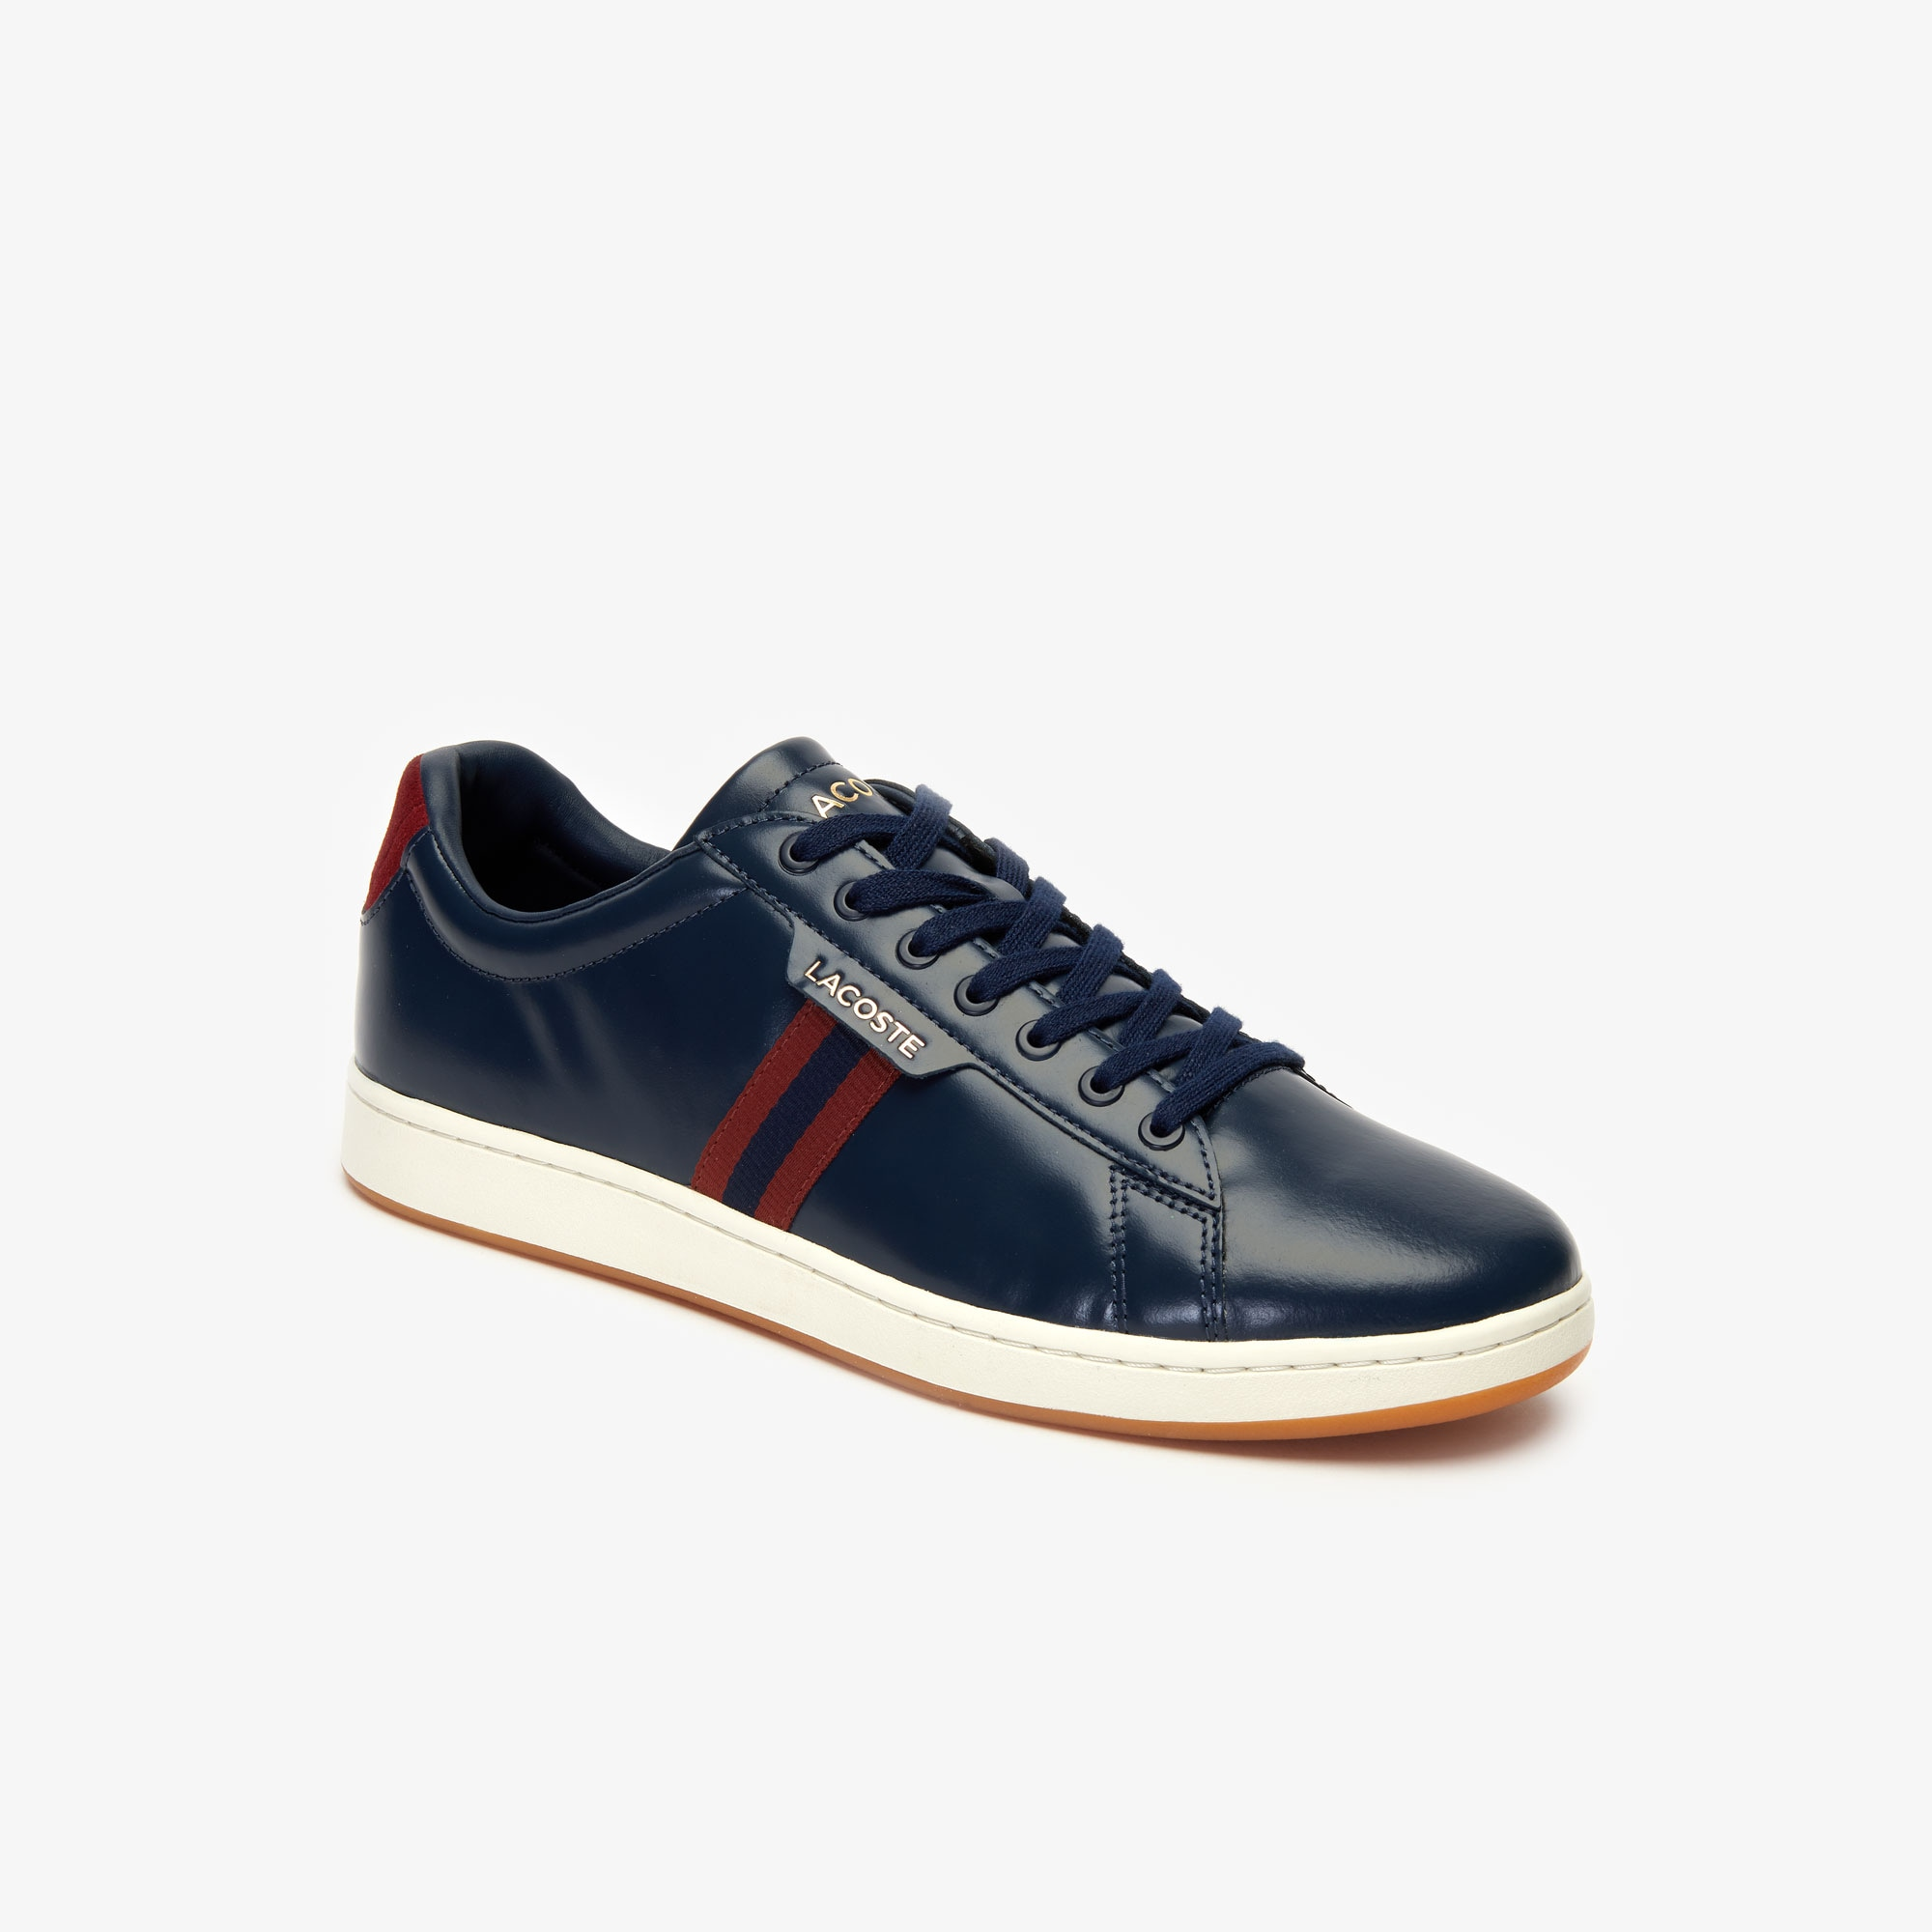 save off 1d703 176a9 Shoes & Sneakers for Men, Women, and Kids | Lacoste